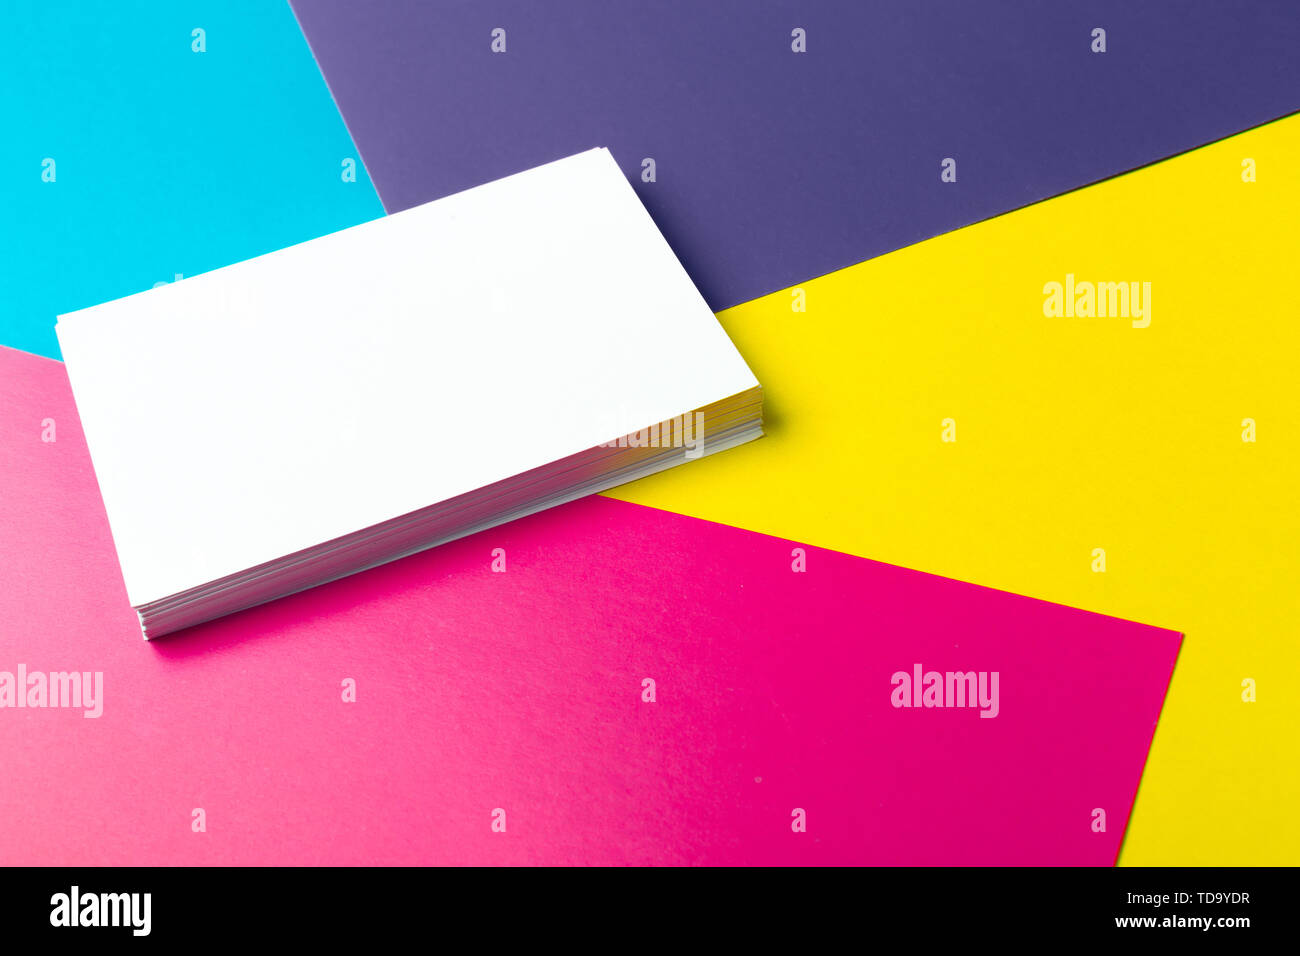 Business card blank over colorful abstract background. - Stock Image